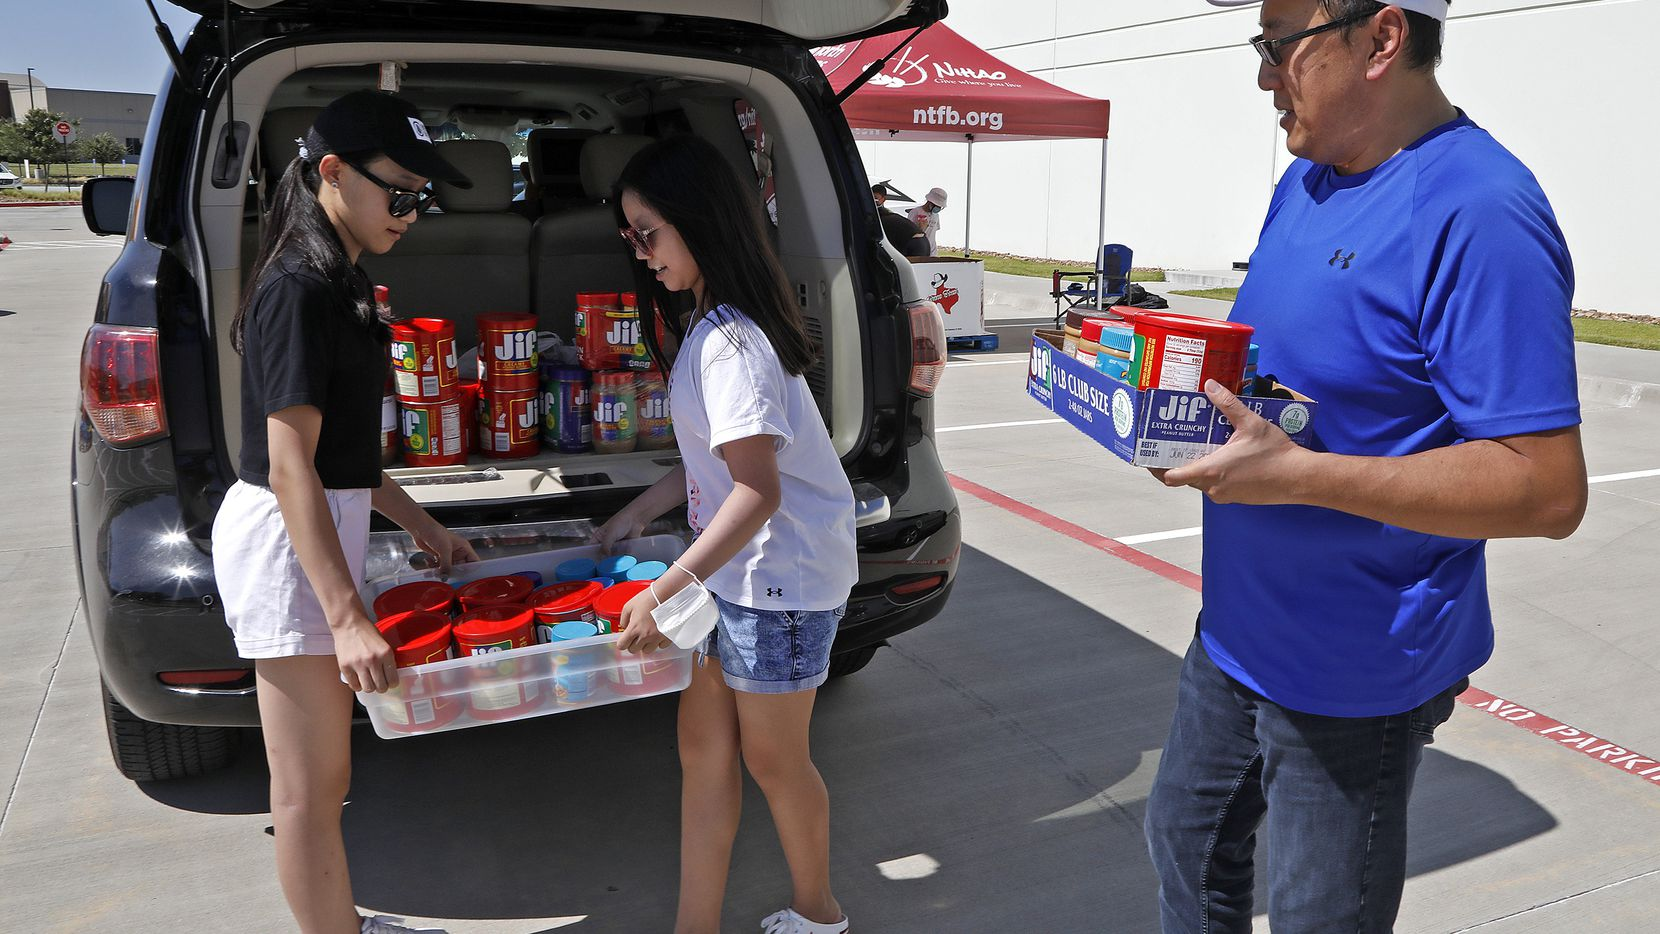 McKinney resident James Huang (right) unloads peanut butter with help from 12-year-olds Betty Lou (left) and Vivian Zhou, both of Allen, during a collection drive to battle hunger. Huang launched a community service effort called the Nihao Movement that organized Saturday's event in Plano in partnership with the North Texas Food Bank. Such charity is viewed by some Asian American leaders as a pillar of efforts to combat hate toward Asian Americans and Pacific Islanders.